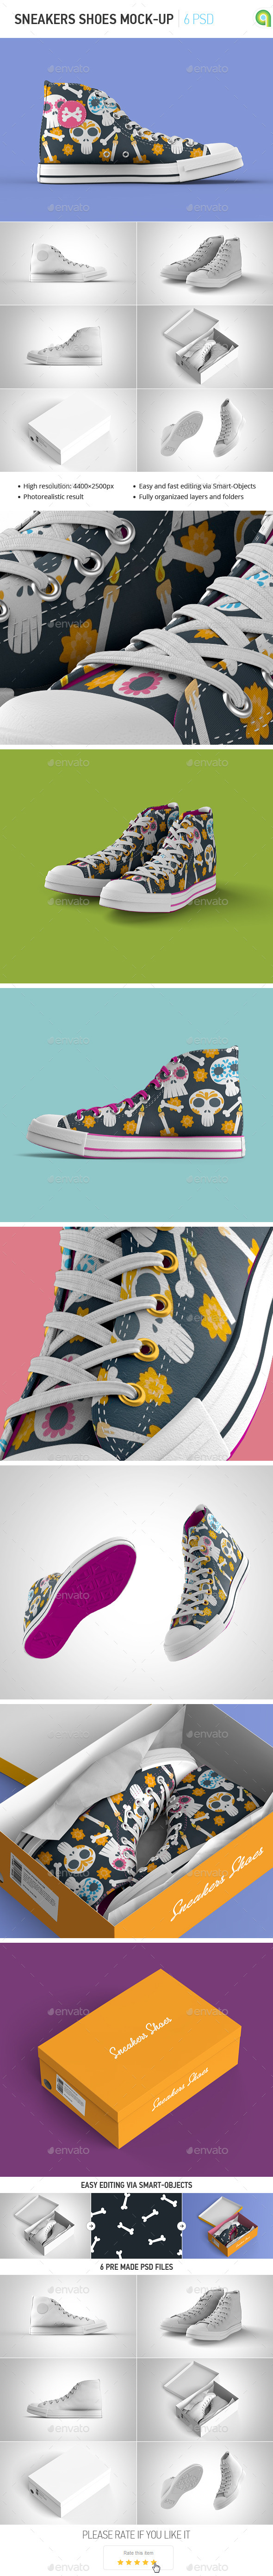 Sneakers Shoes Mock-up - Miscellaneous Apparel